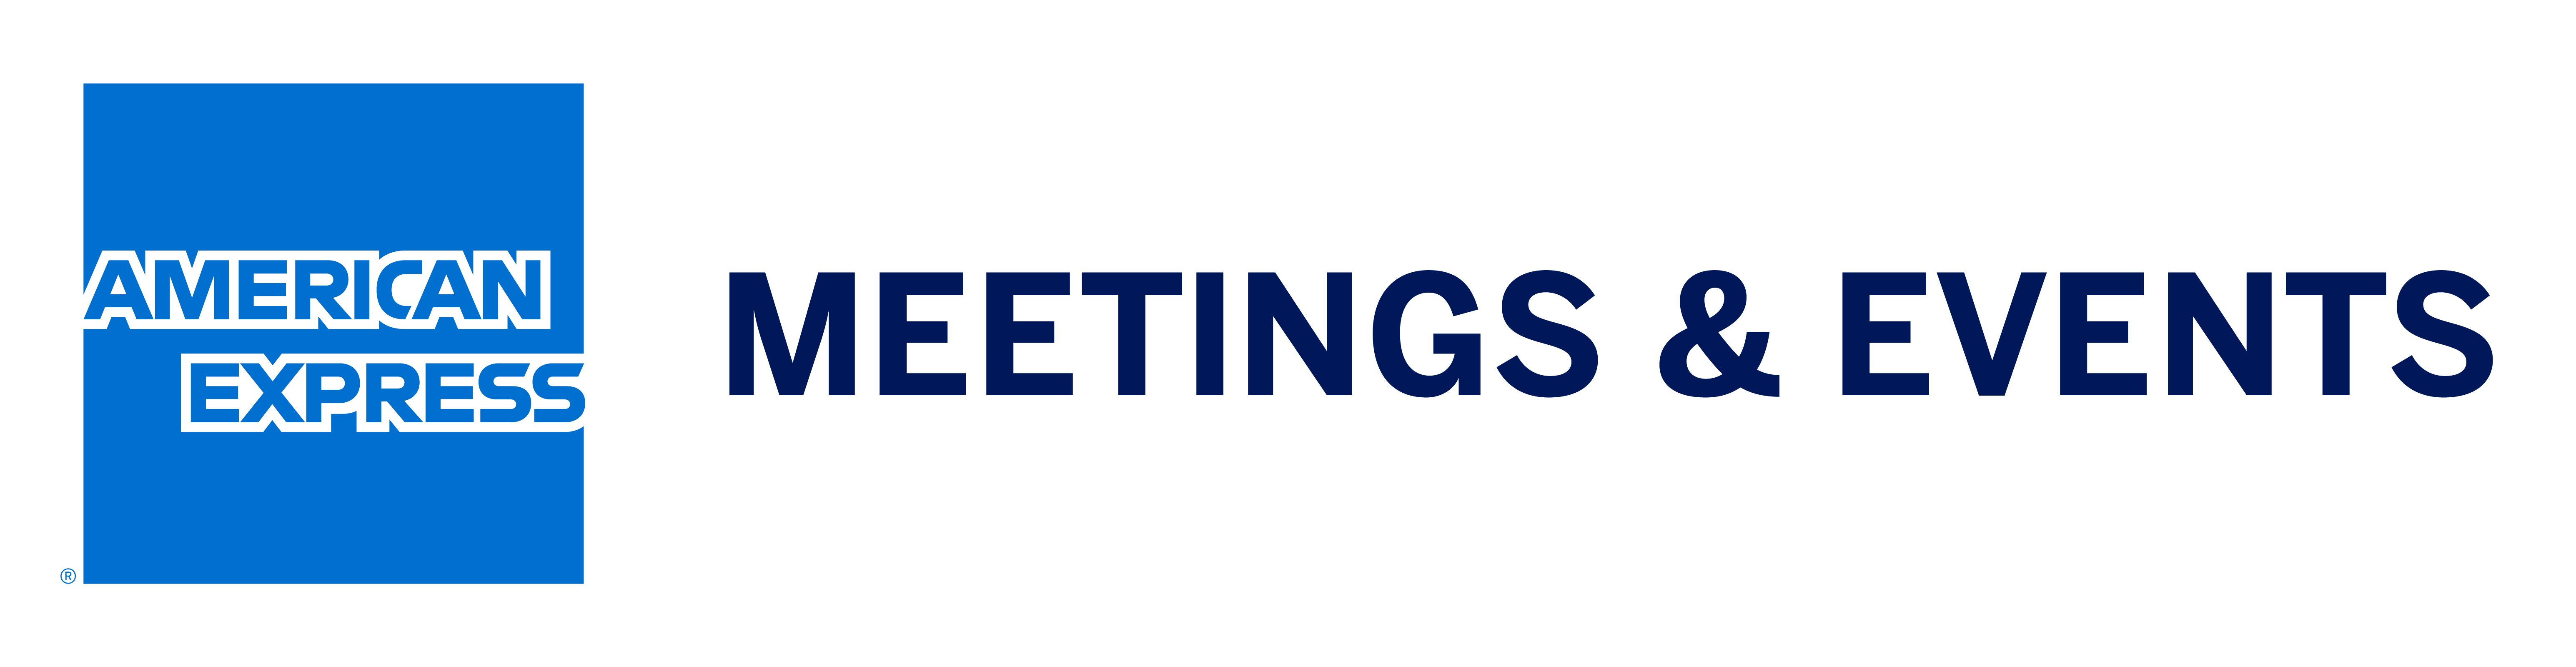 American Express Meetings & Events